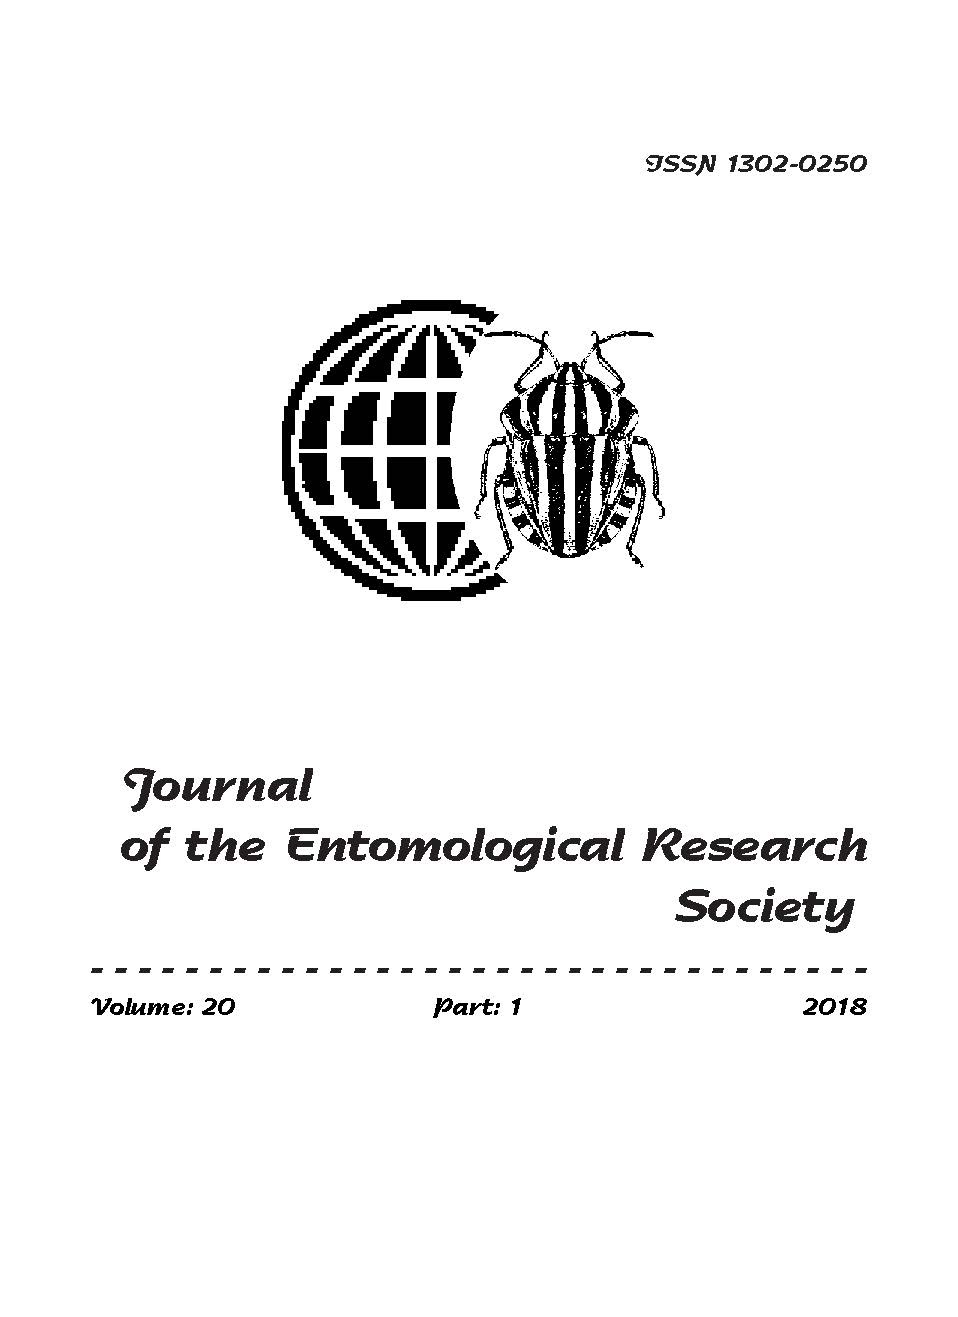 View Vol. 20 No. 1 (2018): Journal of the Entomological Research Society